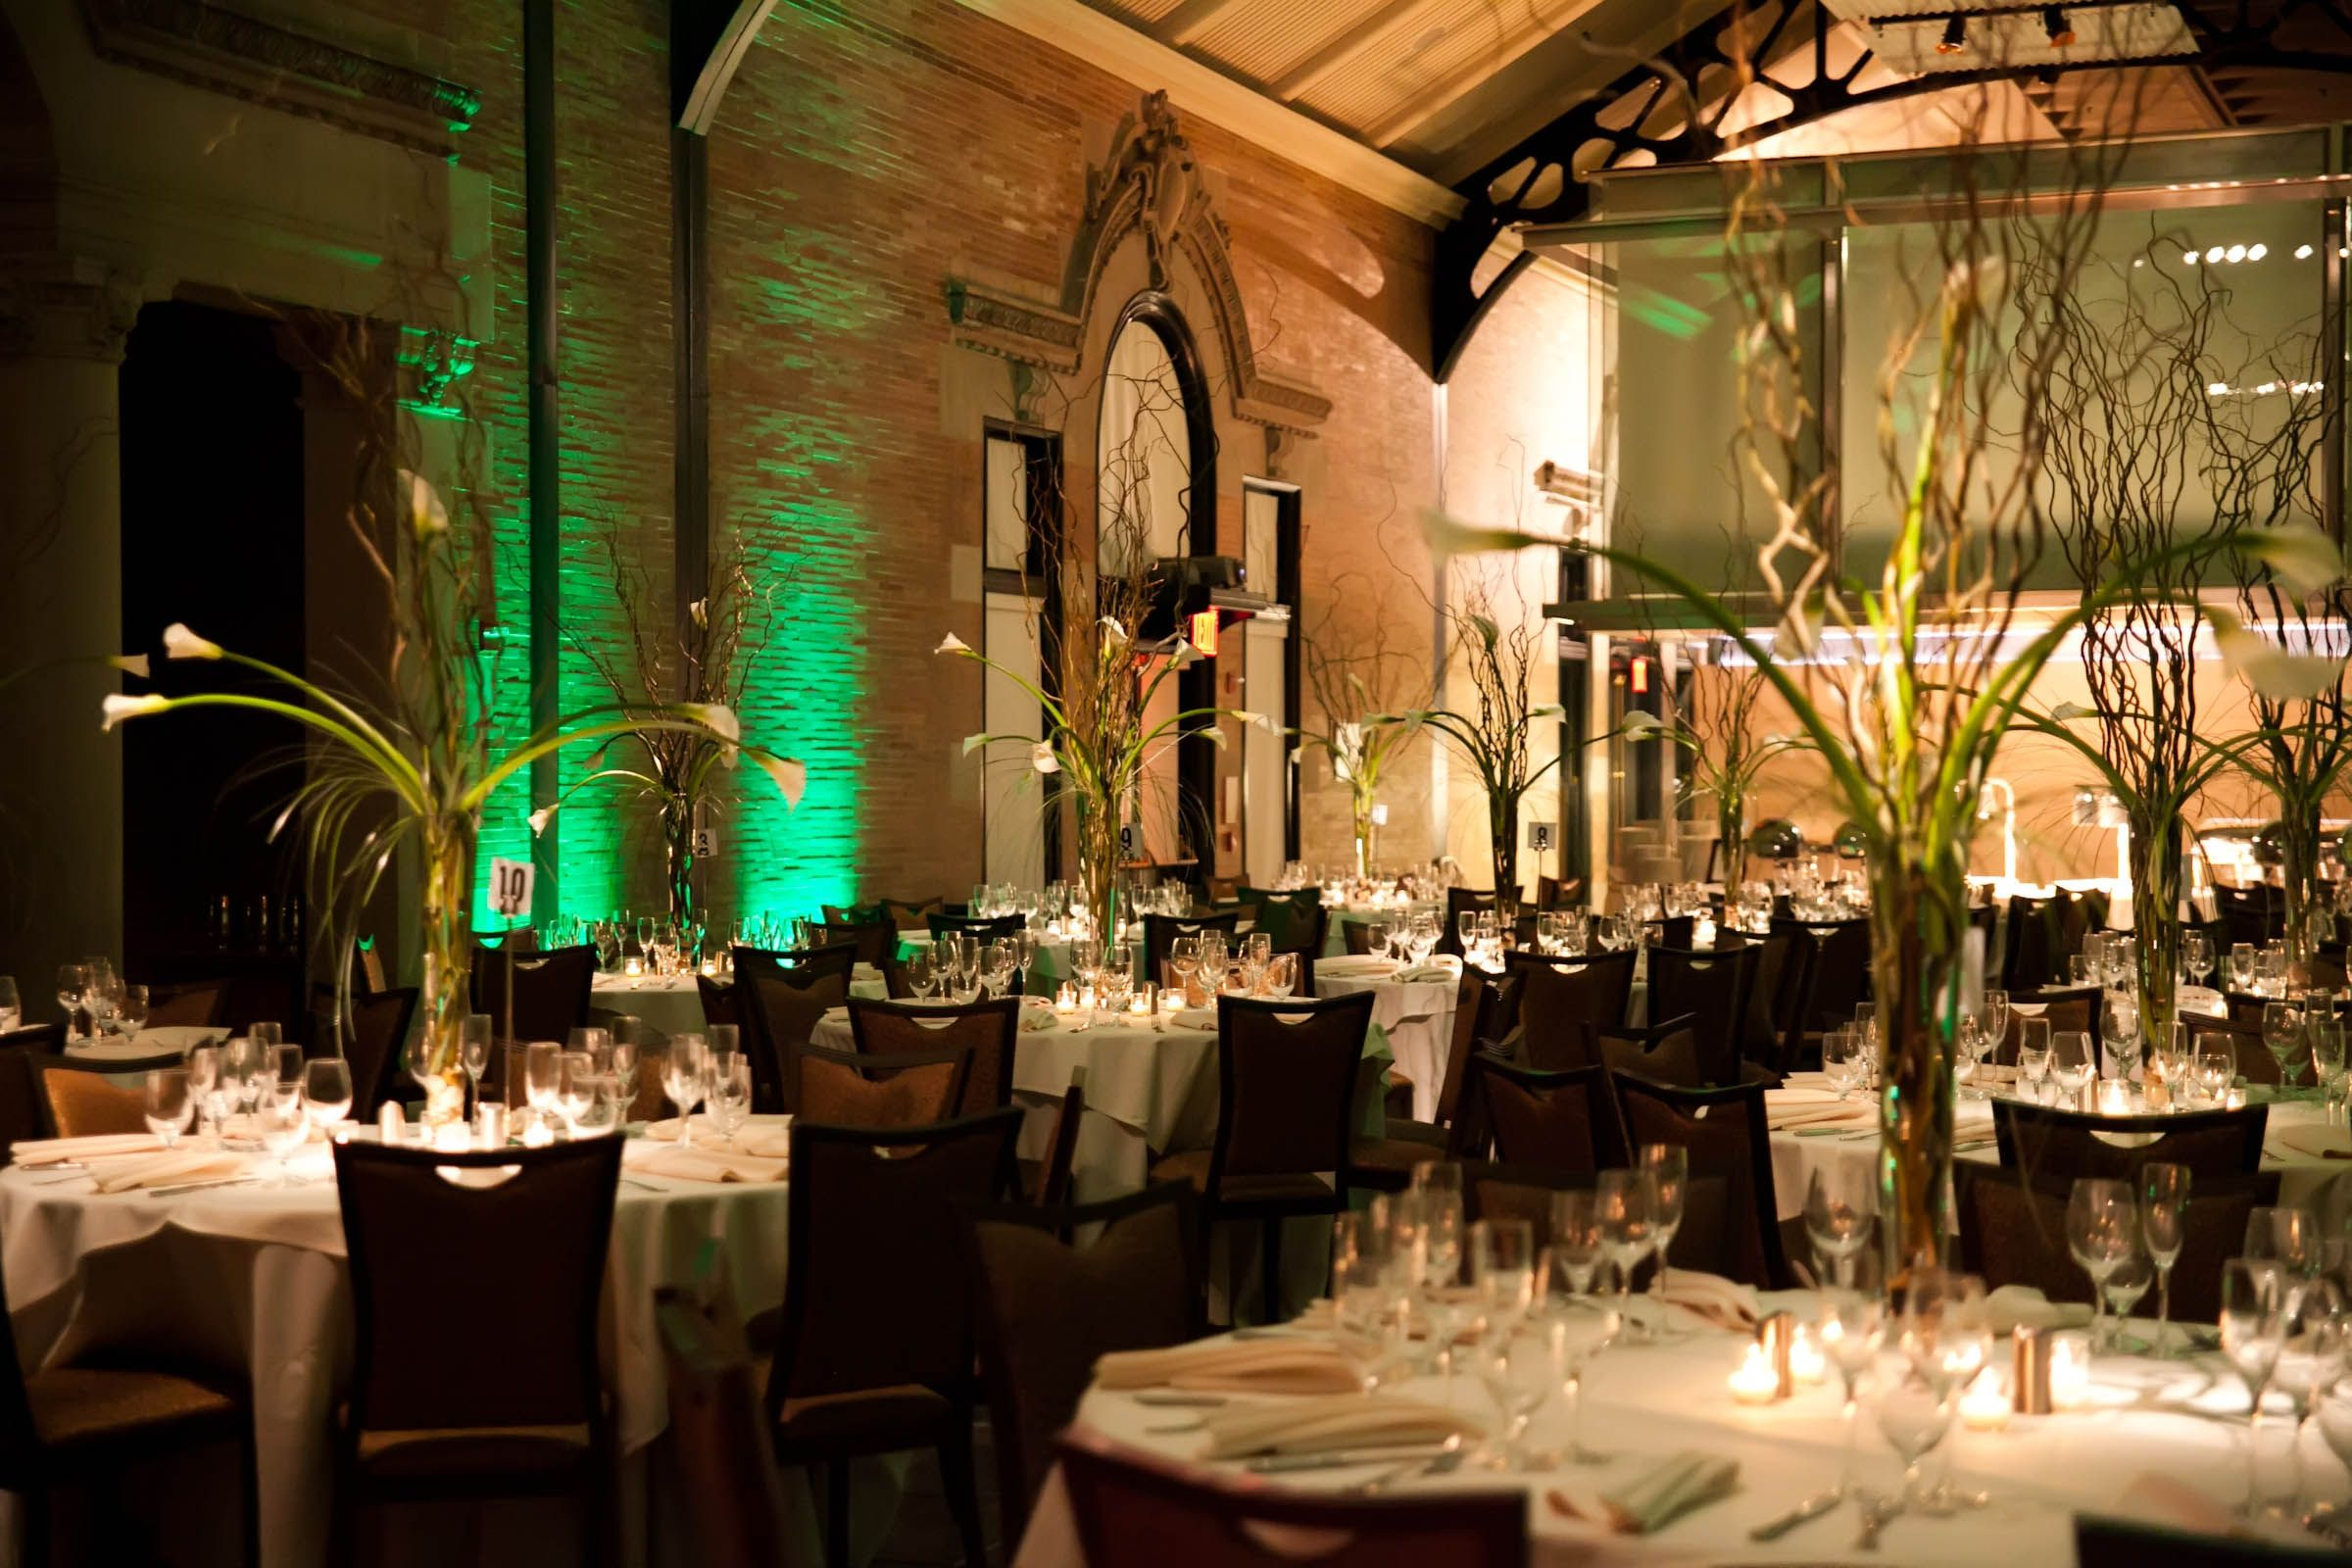 best wedding reception halls in nyc%0A Bronx Zoo Wedding Reception at the Schiff Family Great Hall